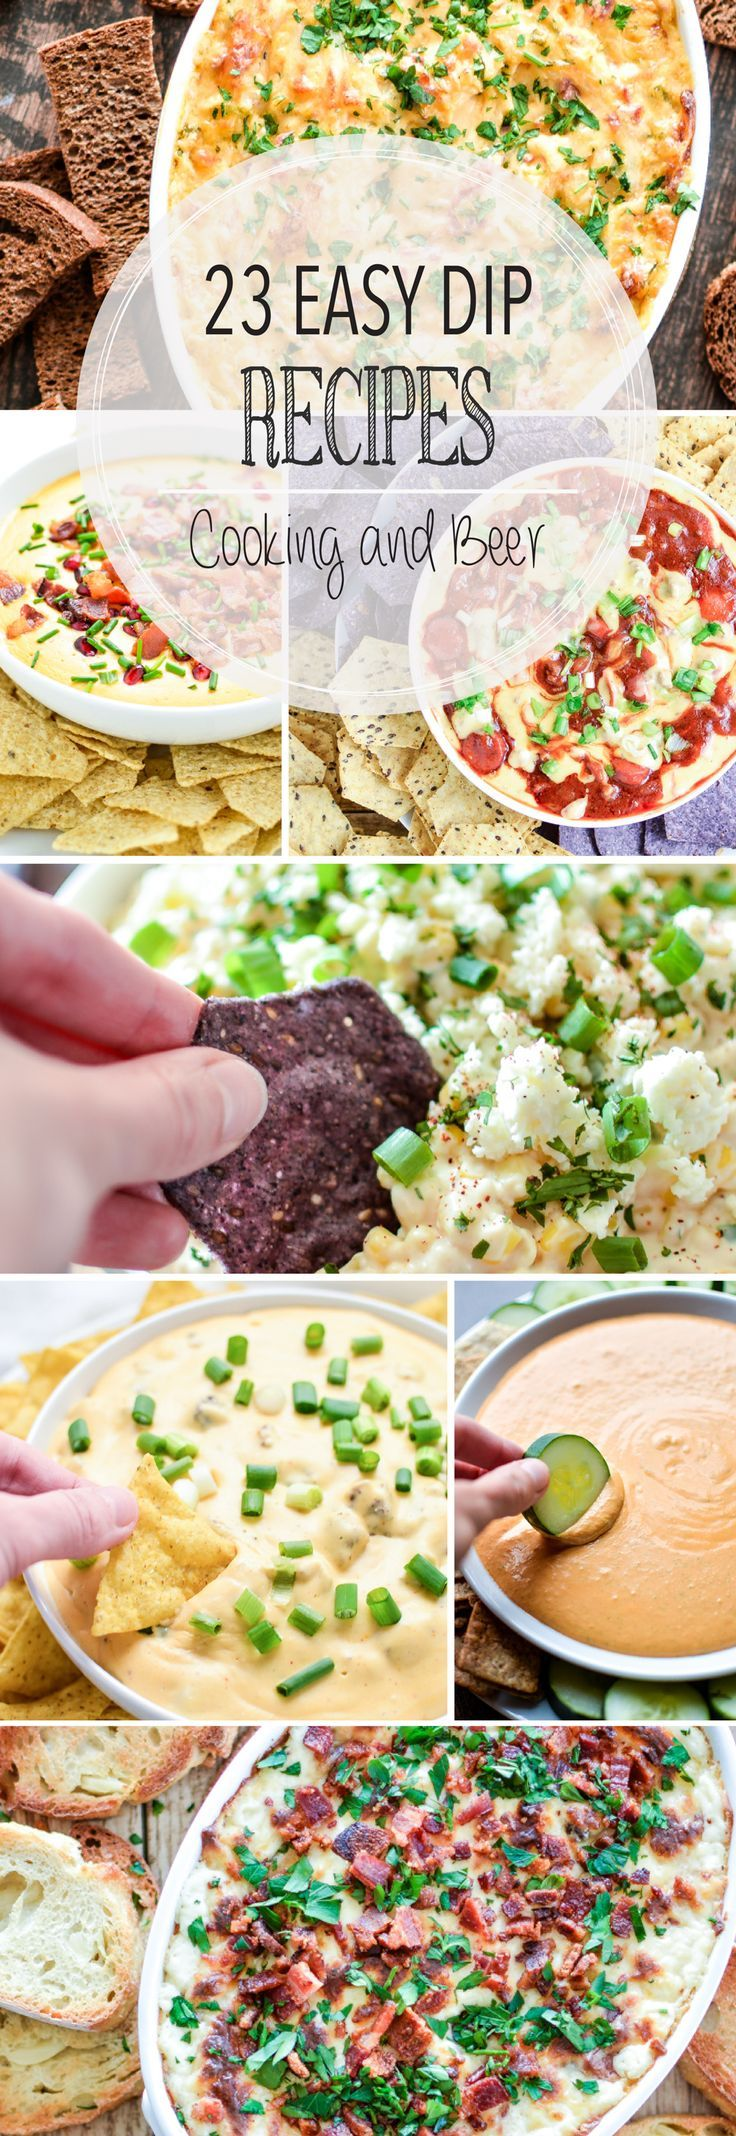 From guacamole to warm reuben dip and from goat cheese to Mexican corn dip, here are 23 easy dip recipes for your next game day party!